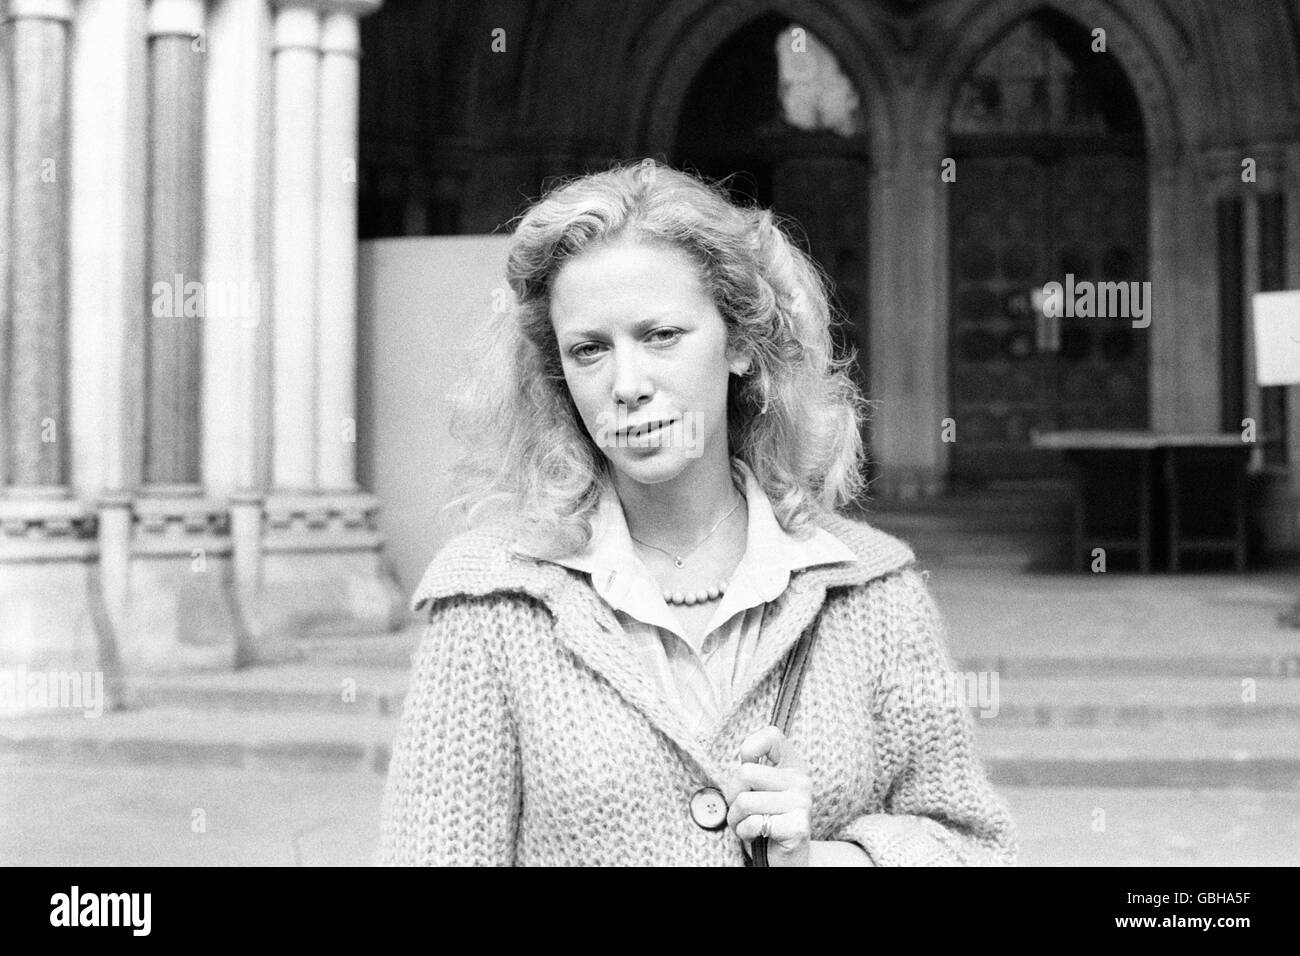 Connie's Betrayal - Loving Wives - m Pictures of connie booth